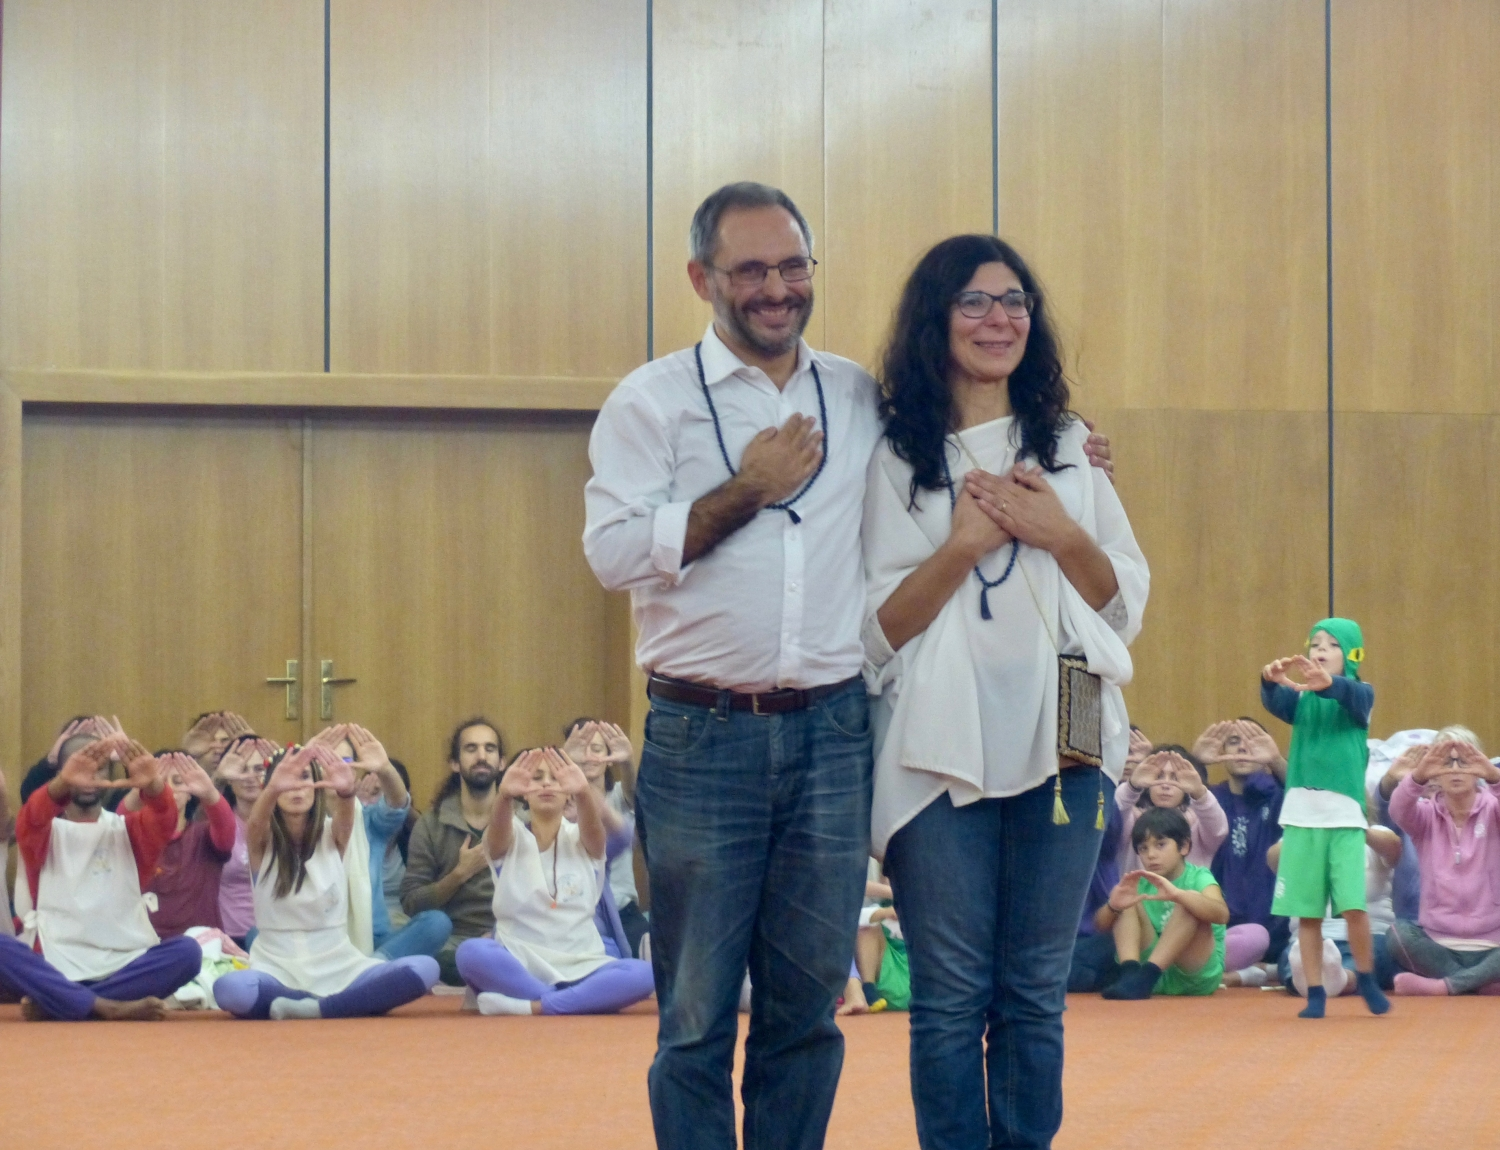 The Directors of the Áshrama of Benfica, Organizers of the National Convention of Yoga - 2018